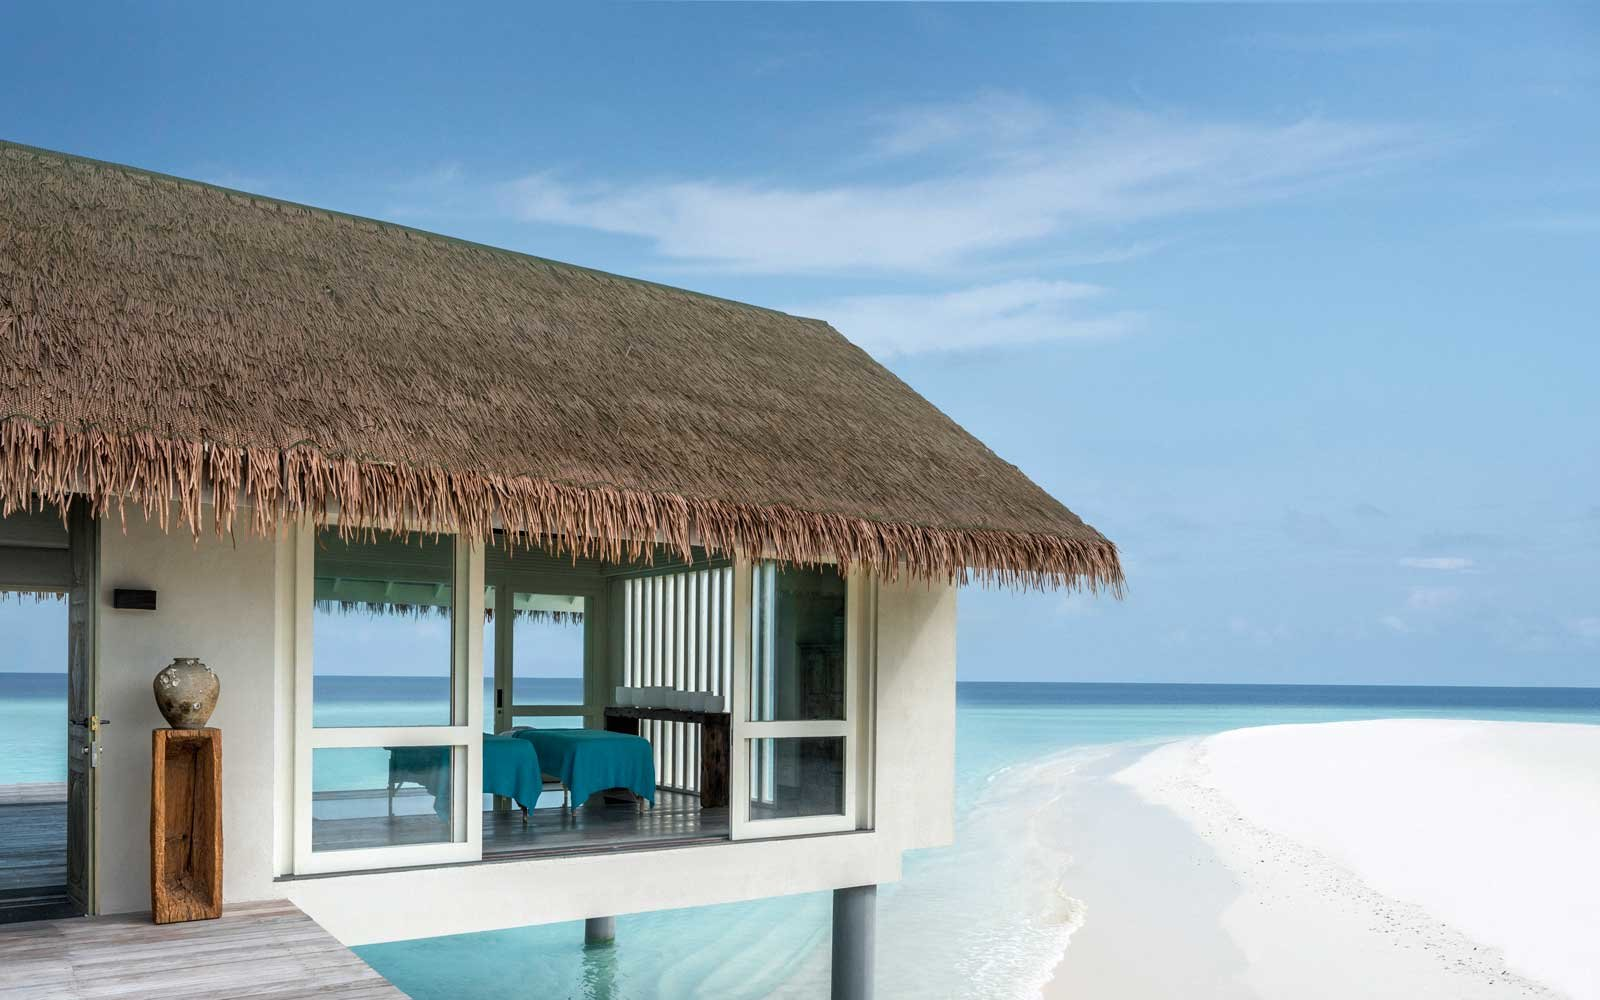 Oceans of Consciousness at Four Seasons Maldives Private Island at Voavah